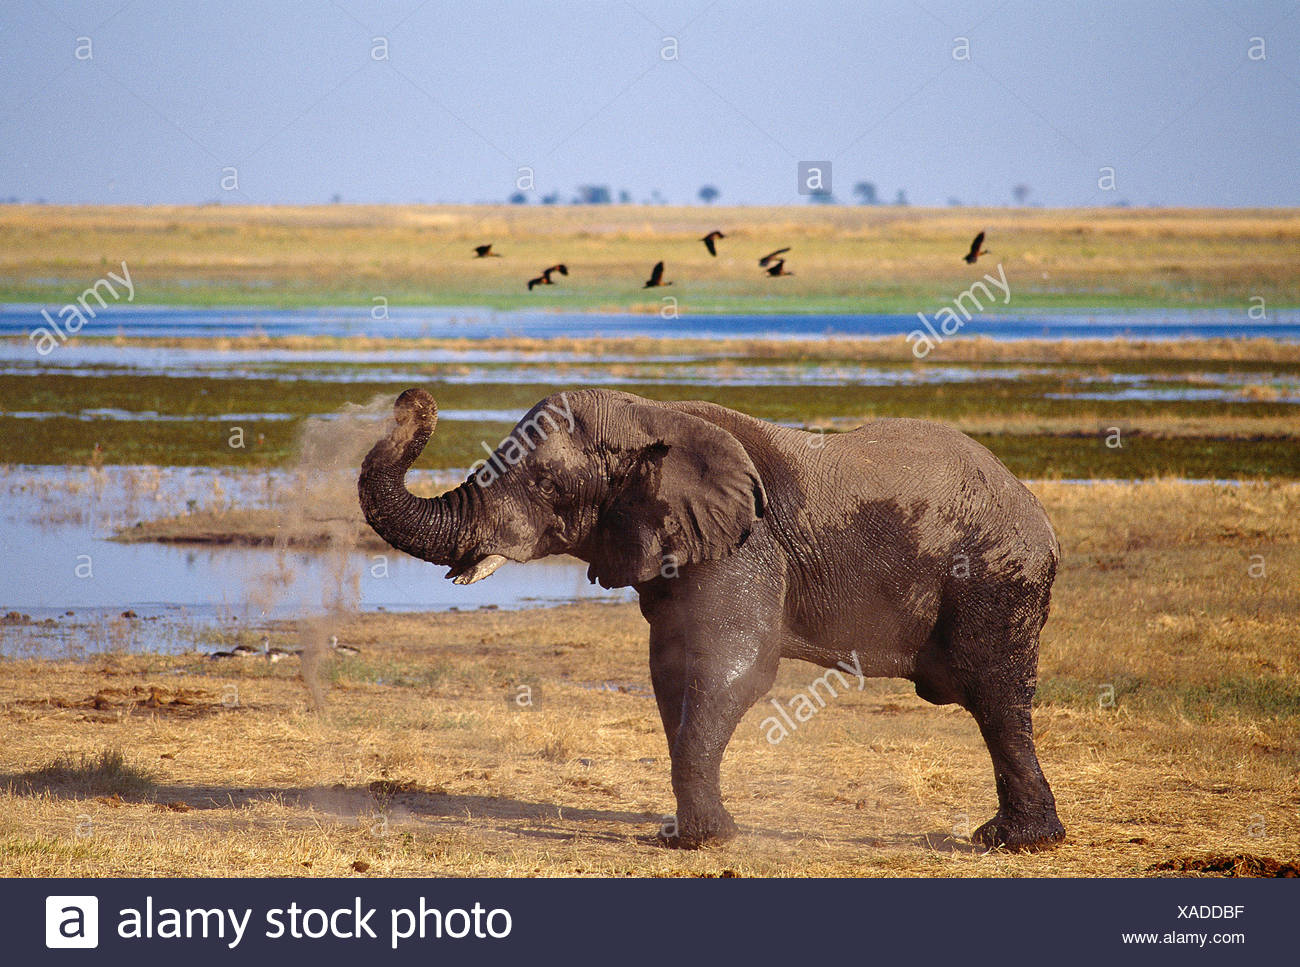 Africa. Botswana. Chobe National Park. Wildlife. Elephant. - Stock Image